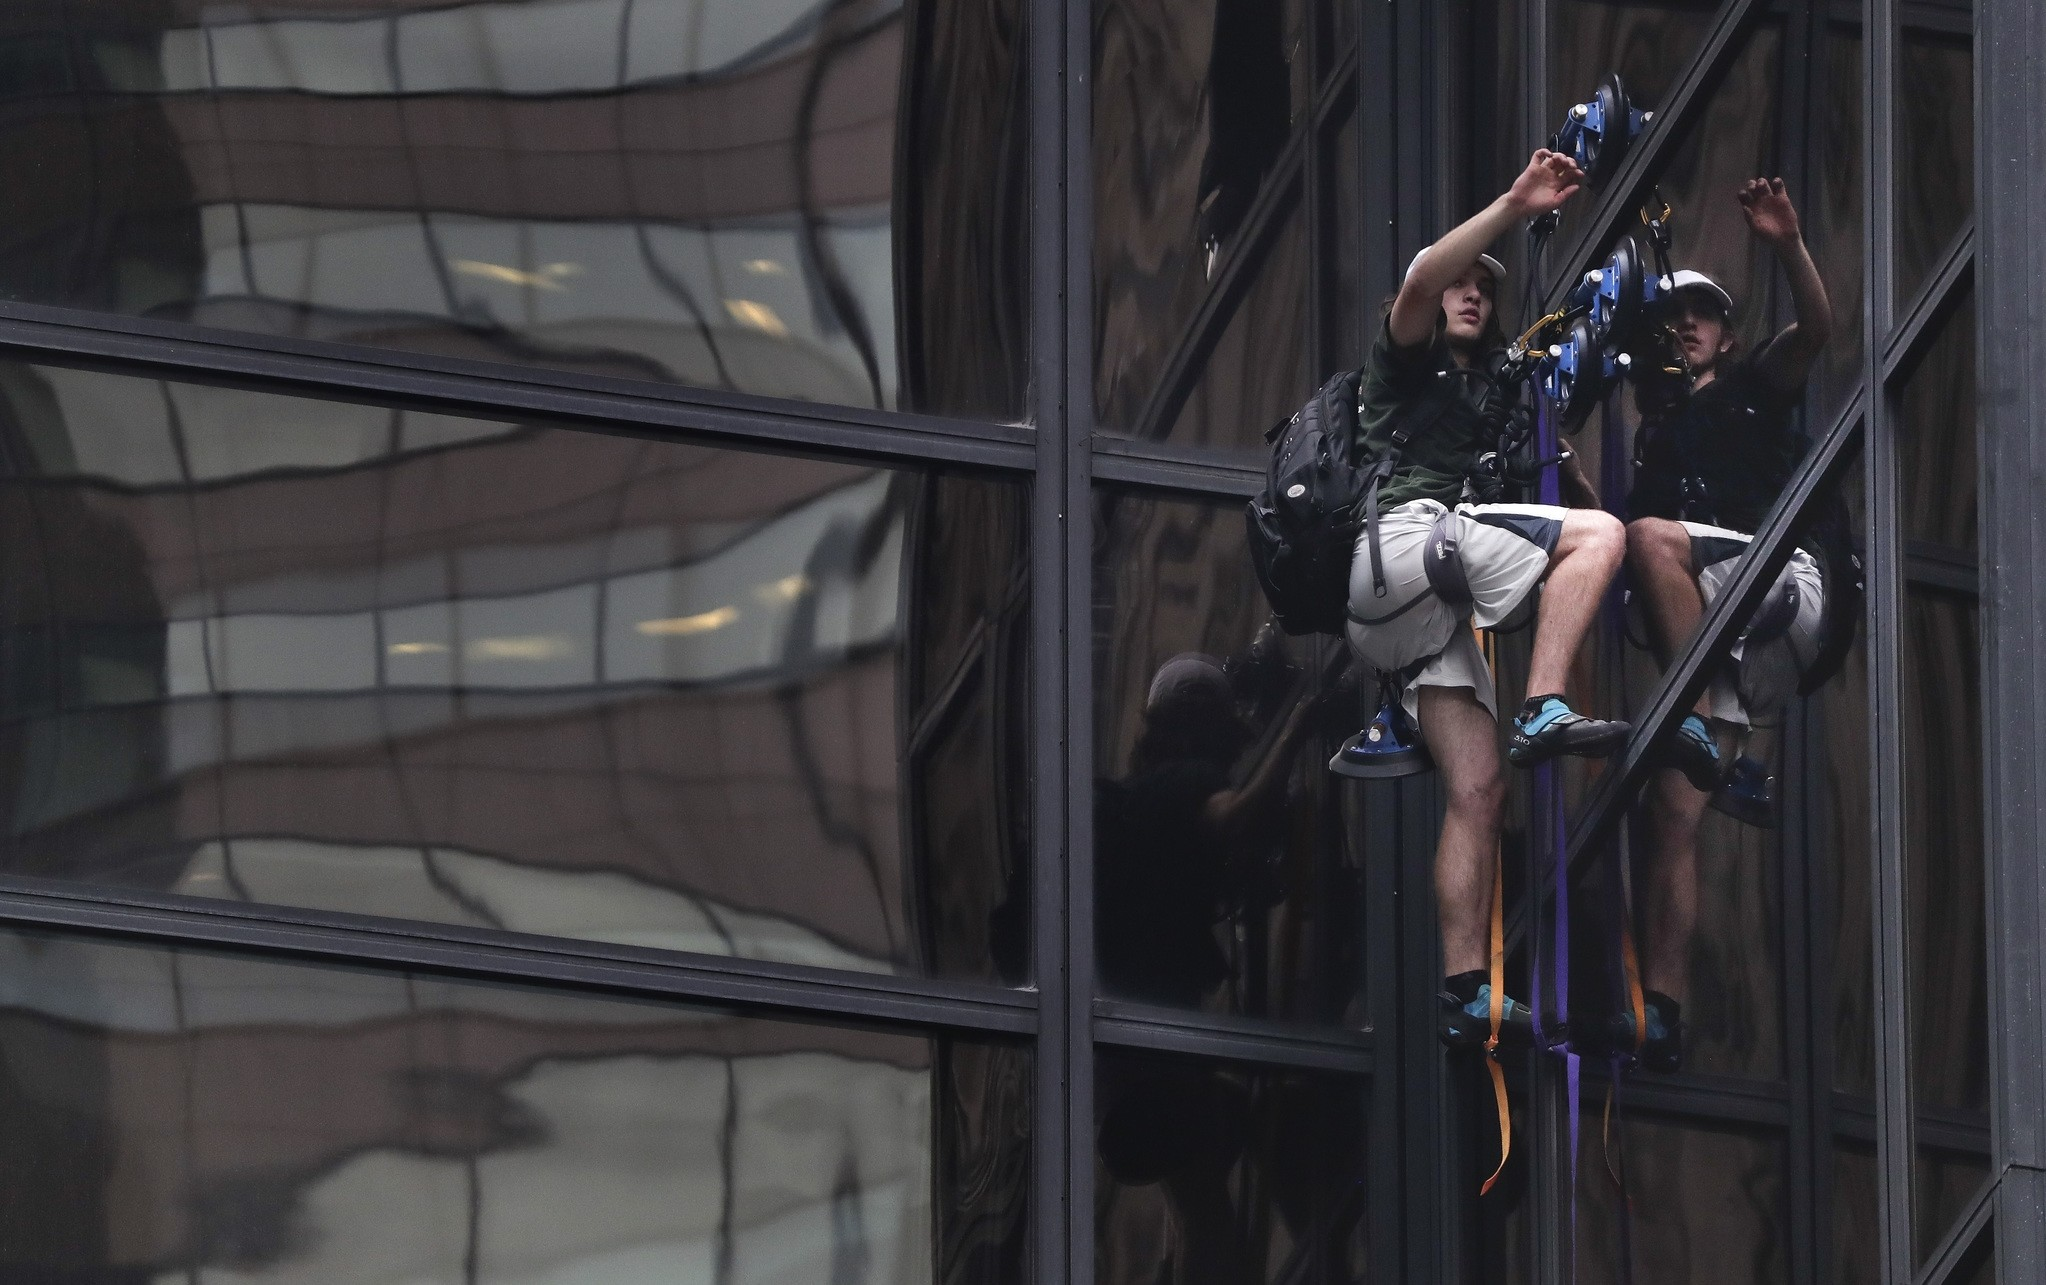 A man scales Trump Tower using suction cups, Wednesday, Aug. 10, 2016, in New York. (AP Photo)